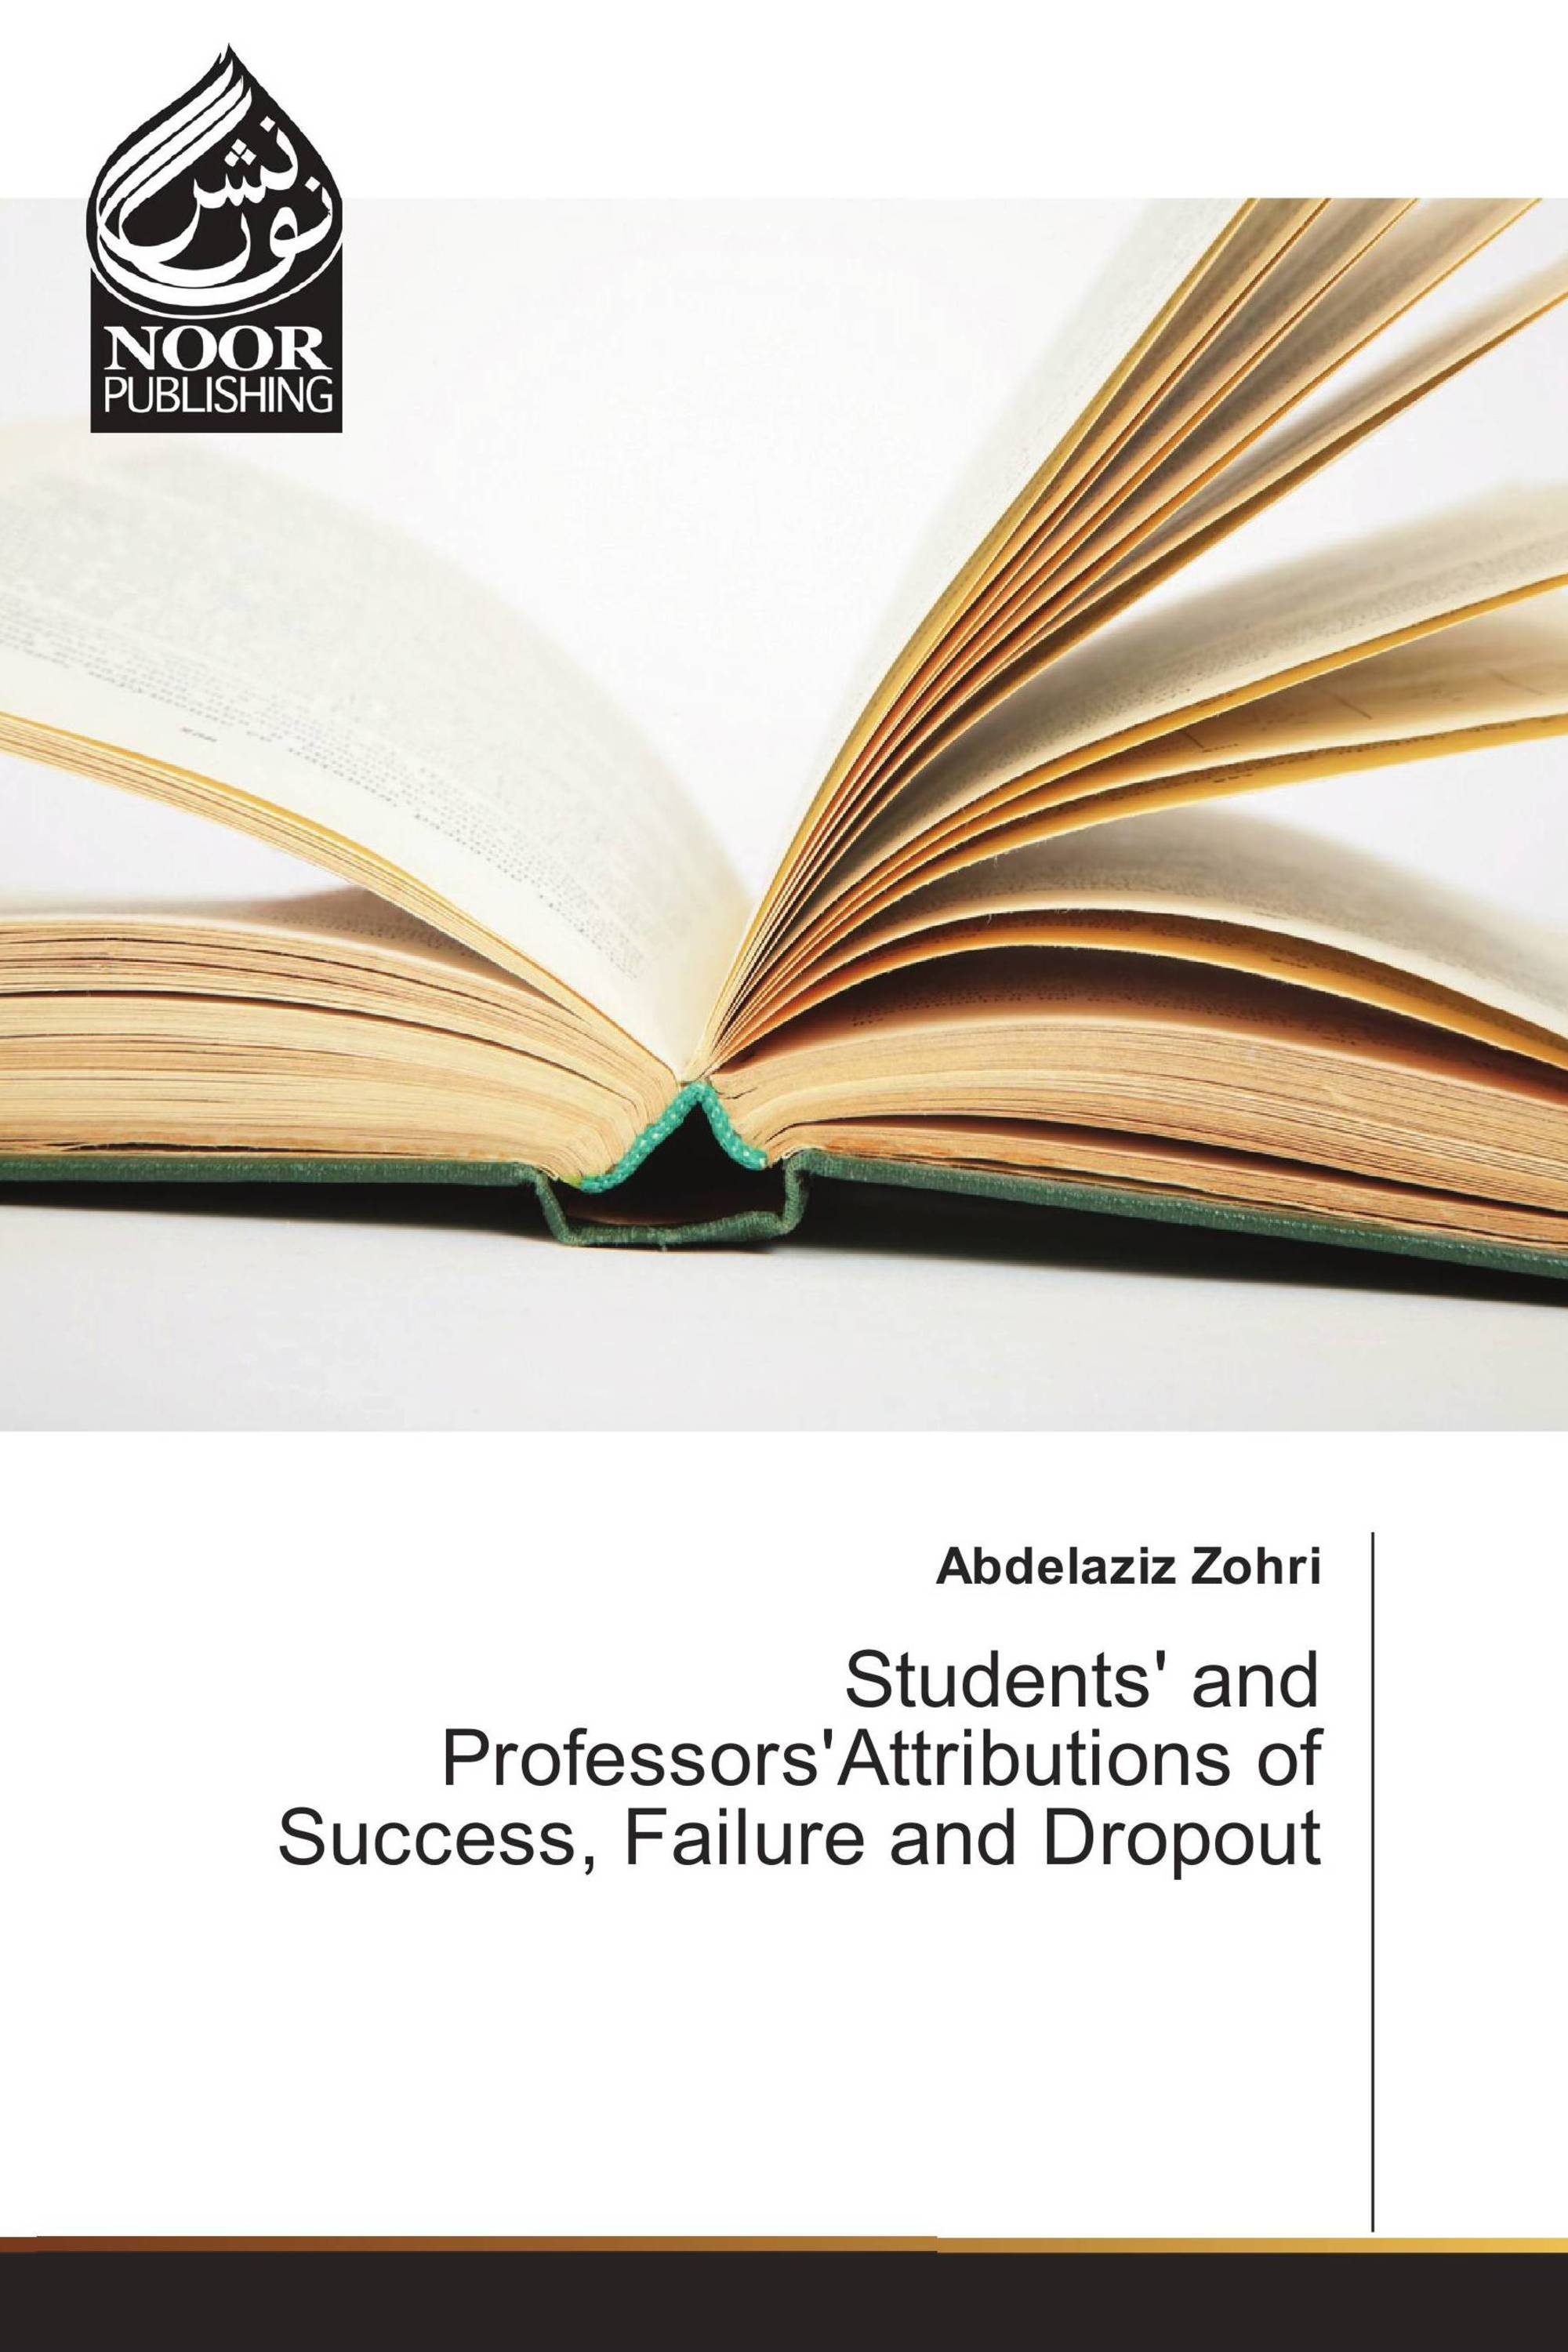 Students' and Professors'Attributions of Success, Failure and Dropout